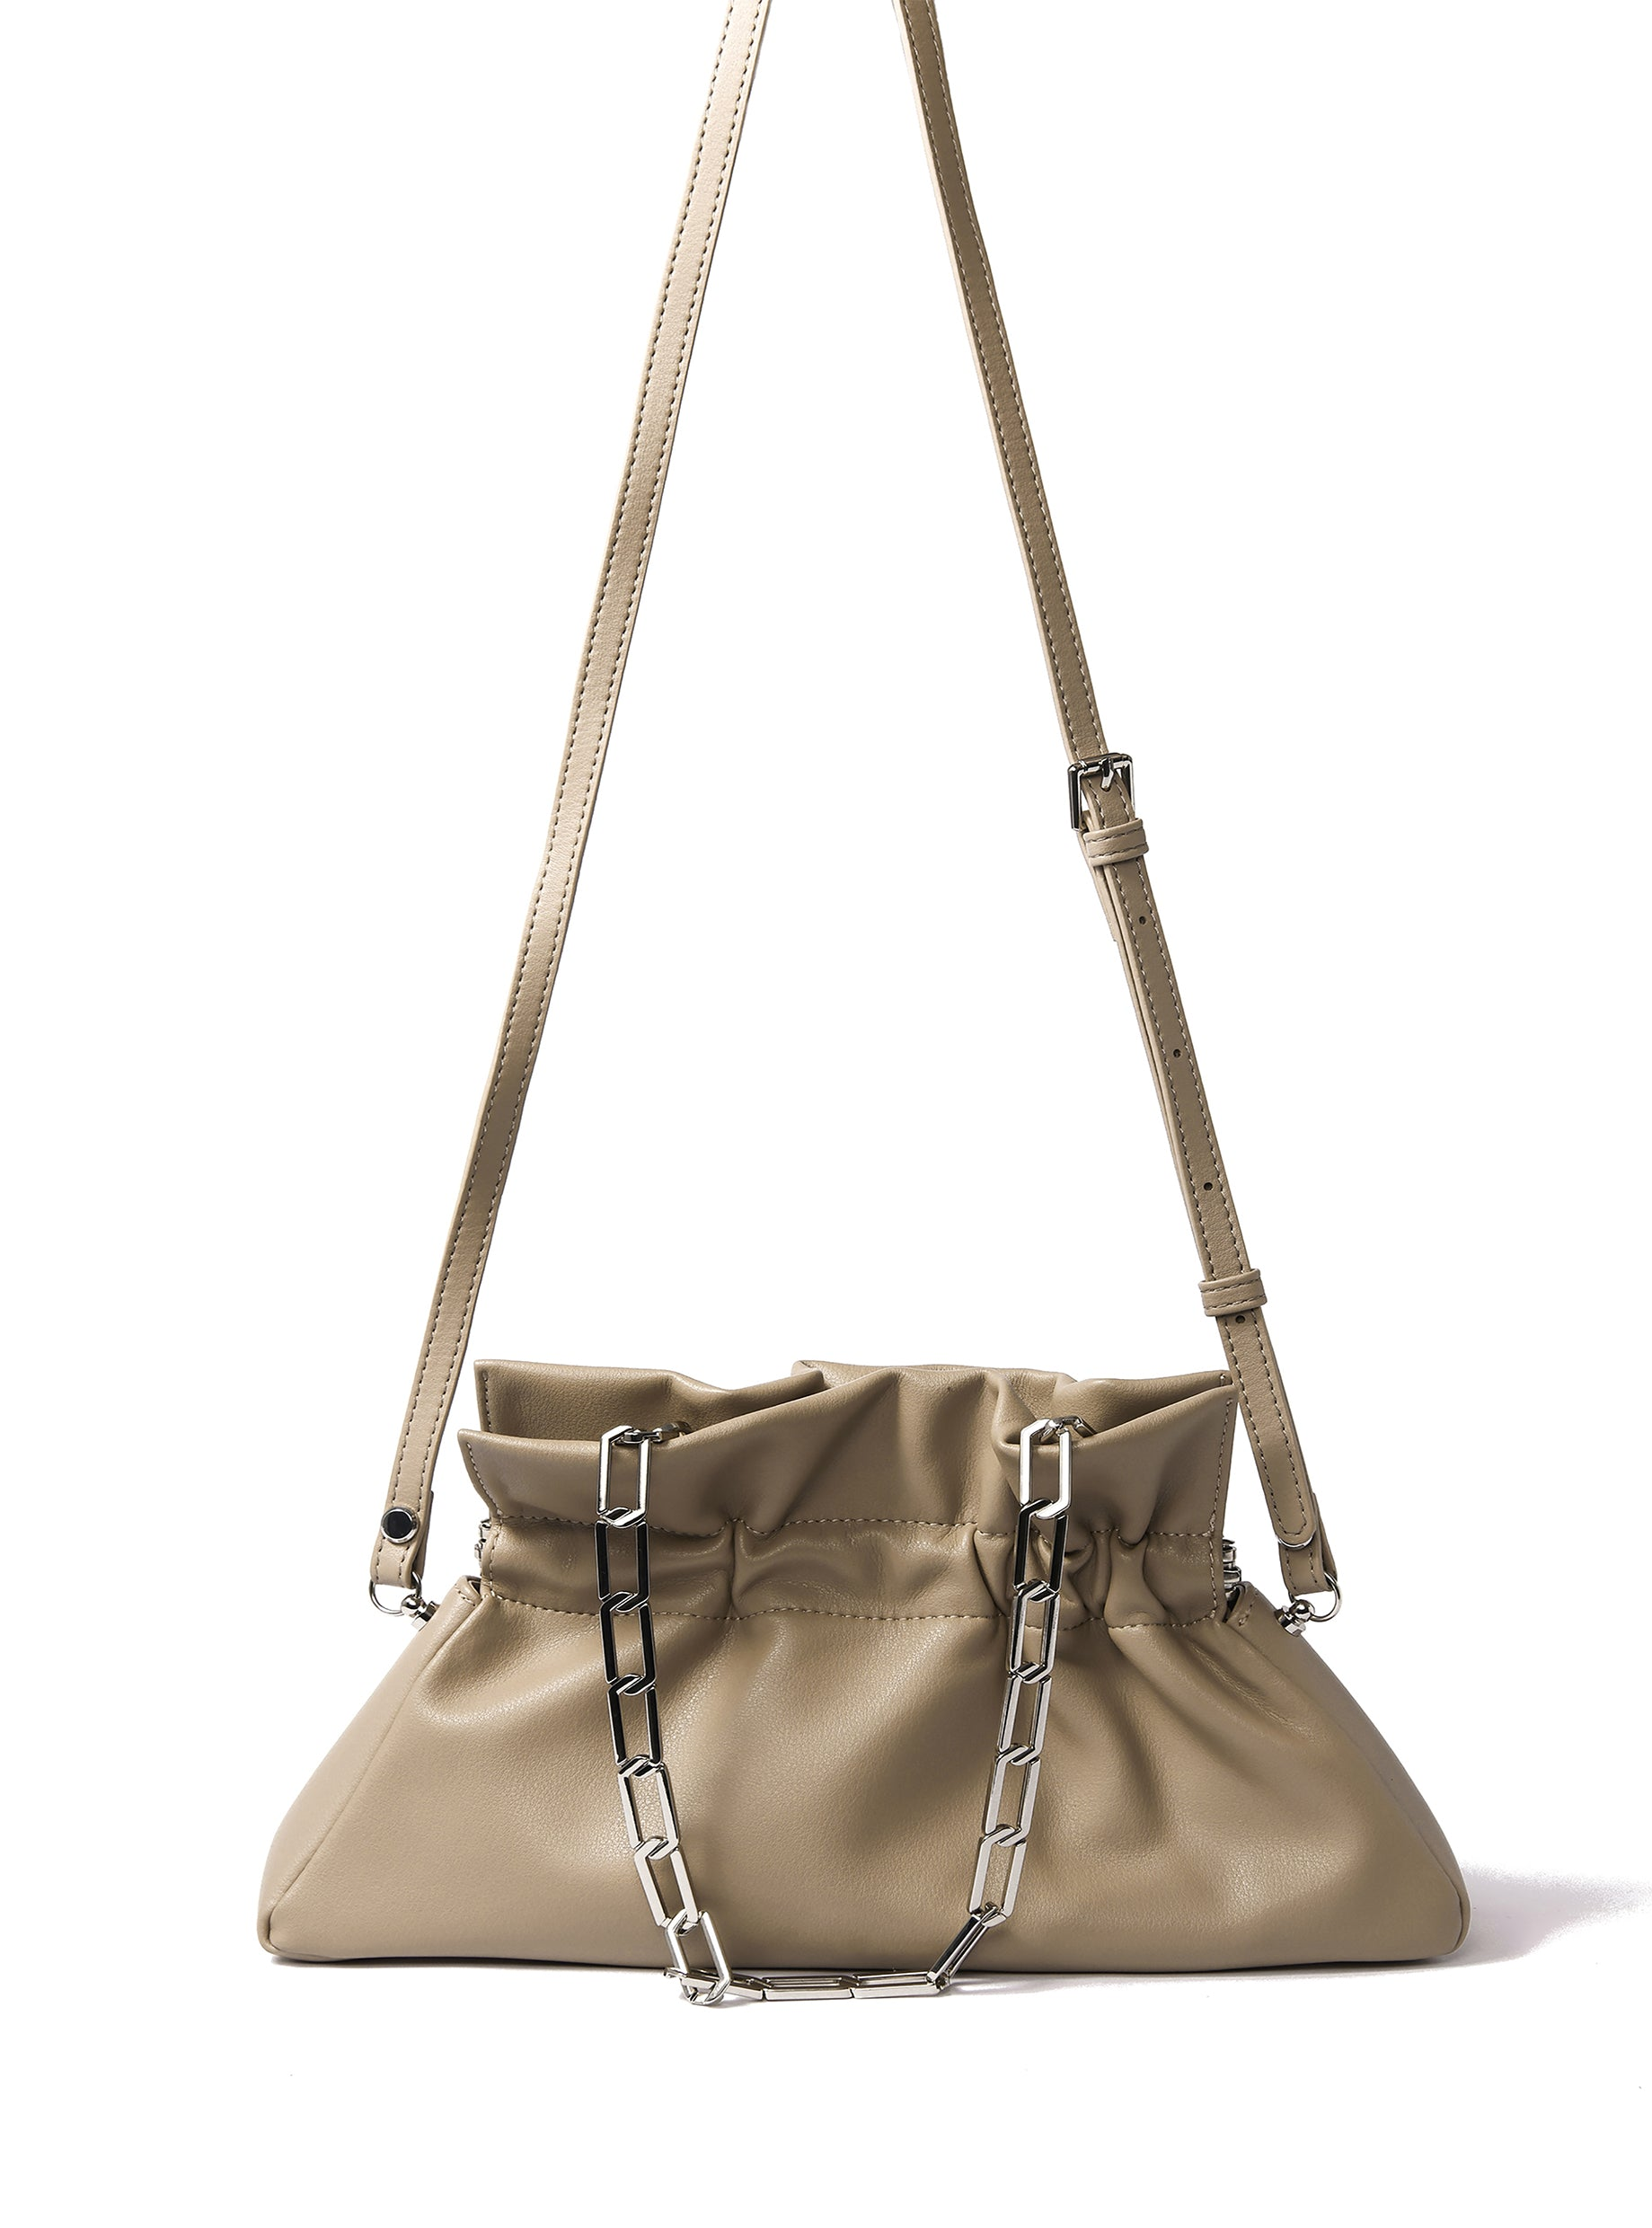 Mila Bag in smooth leather, Coffee